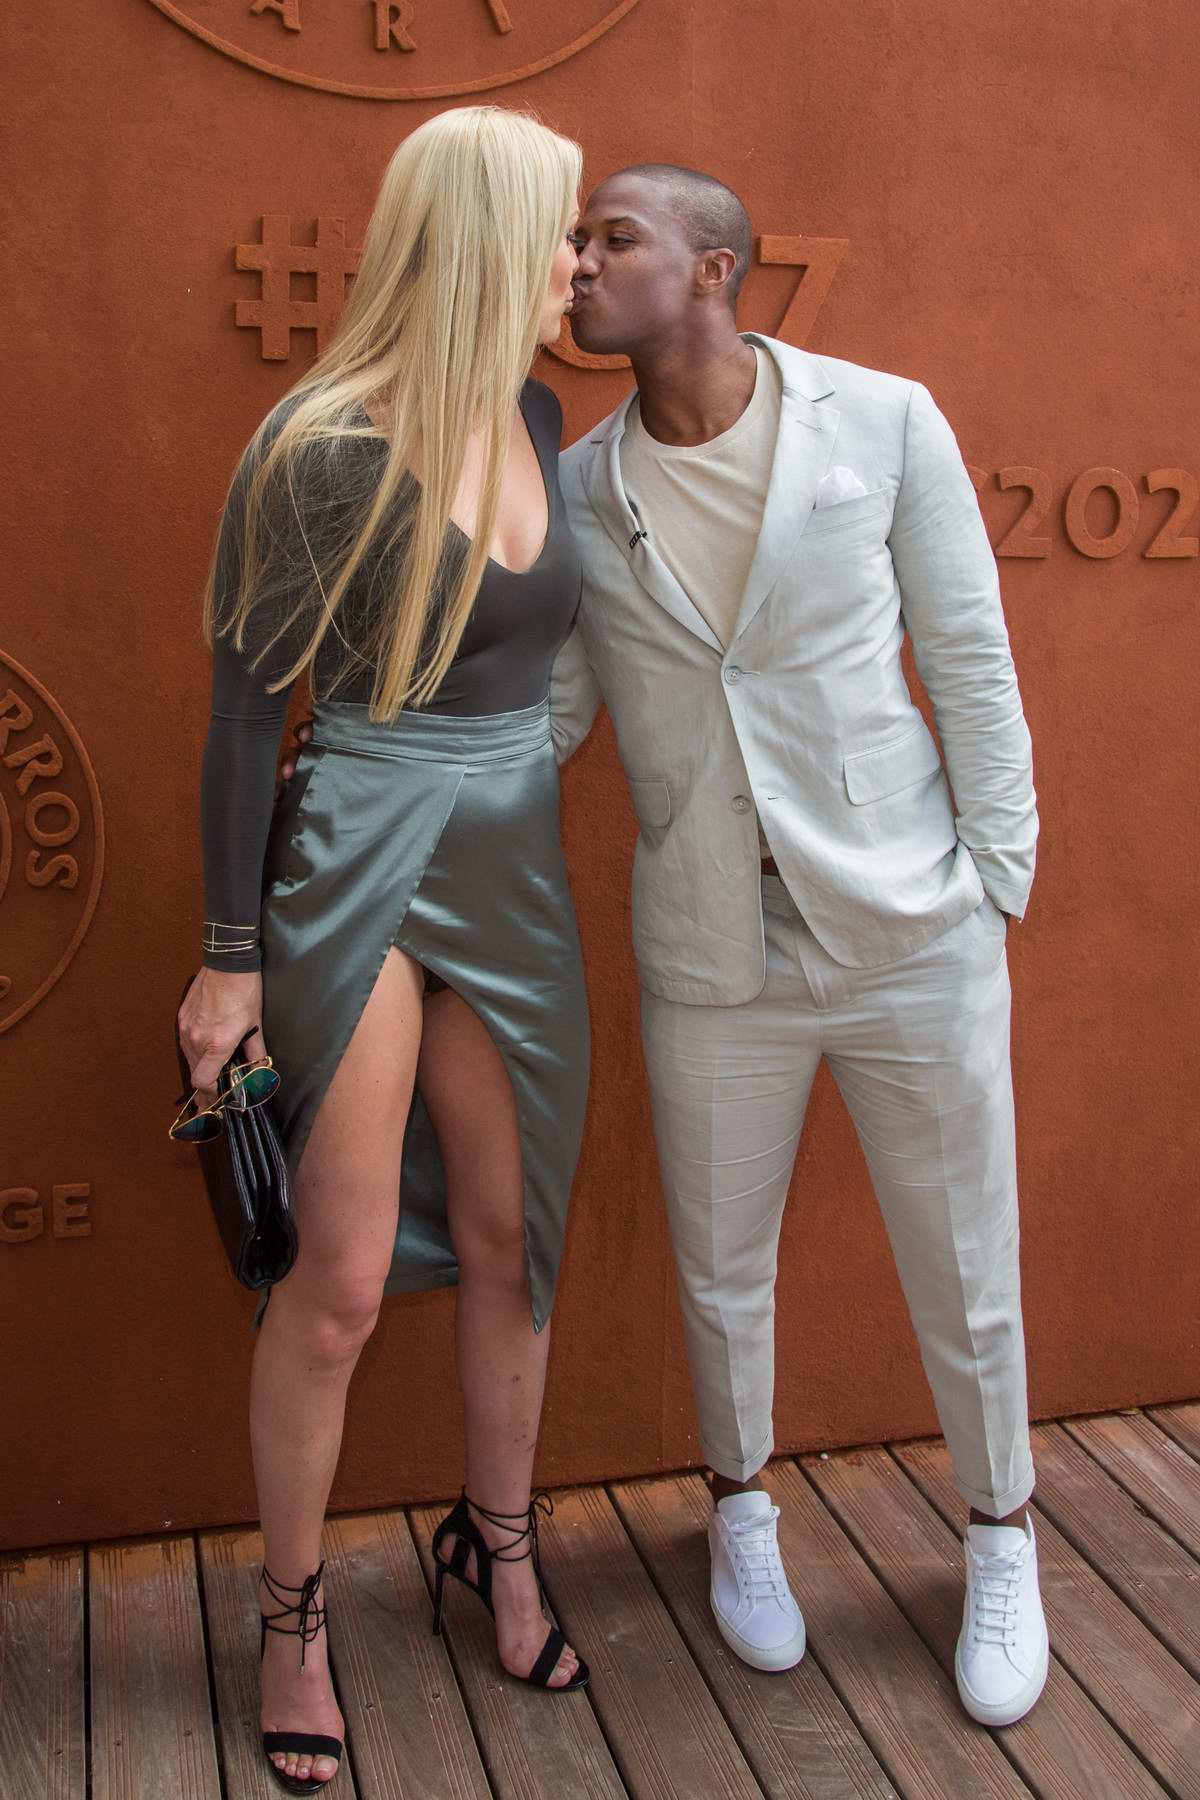 Lindsey Vonn With Her Boyfriend Kanan Smith At The French